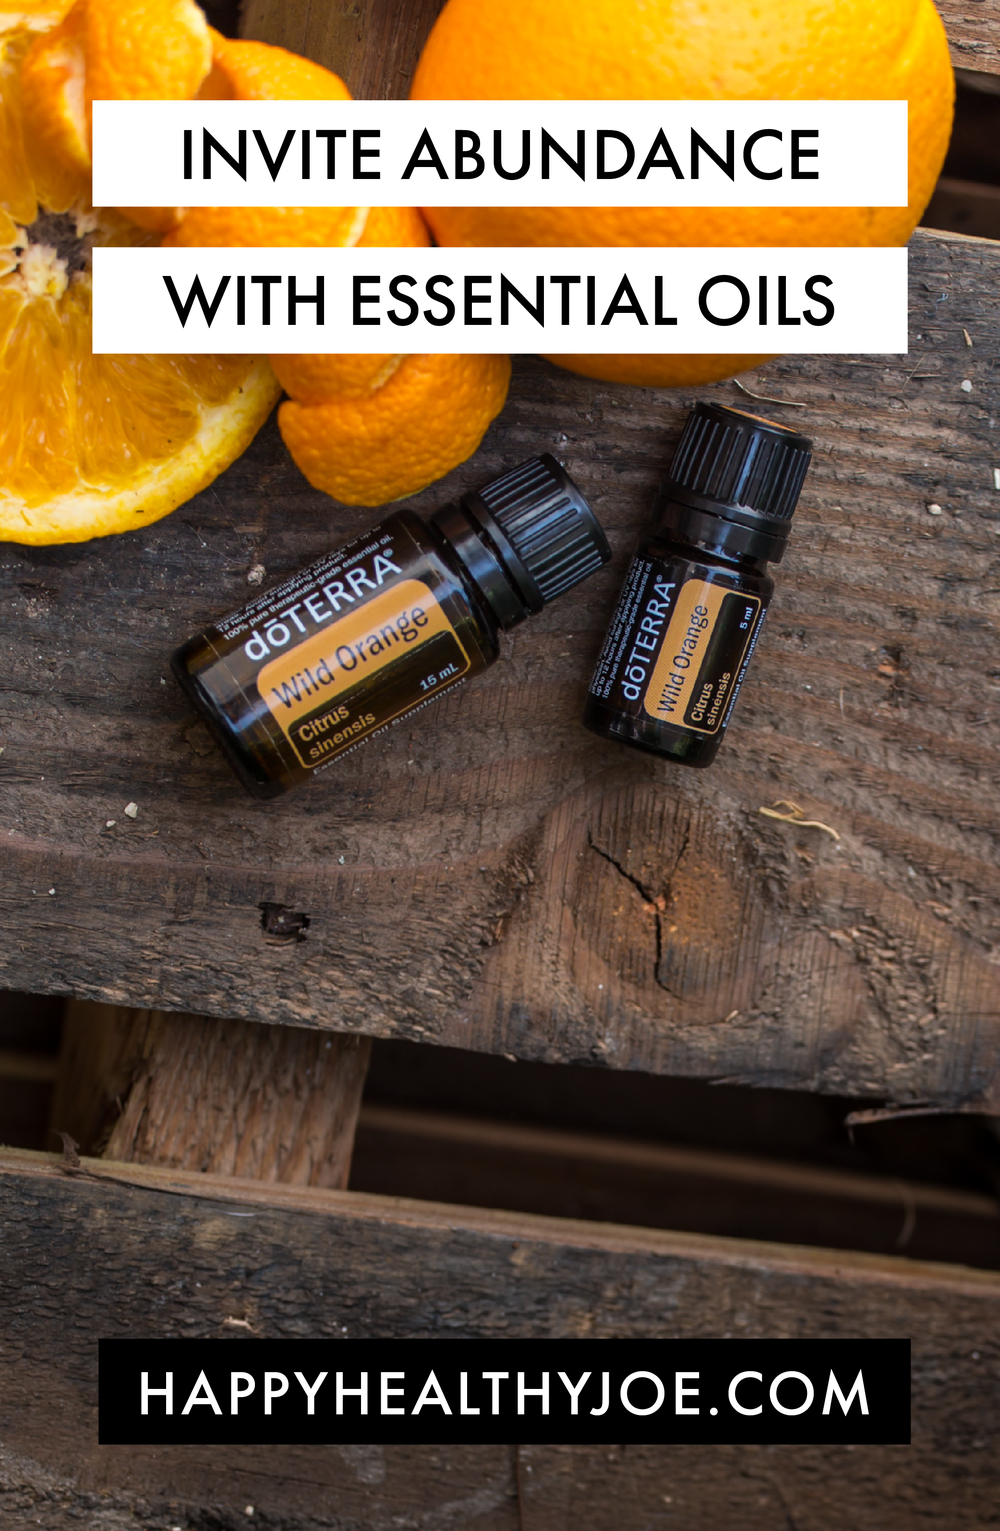 Blend Your Own Abundance with doTERRA Essential Oils Happy Healthy Joe